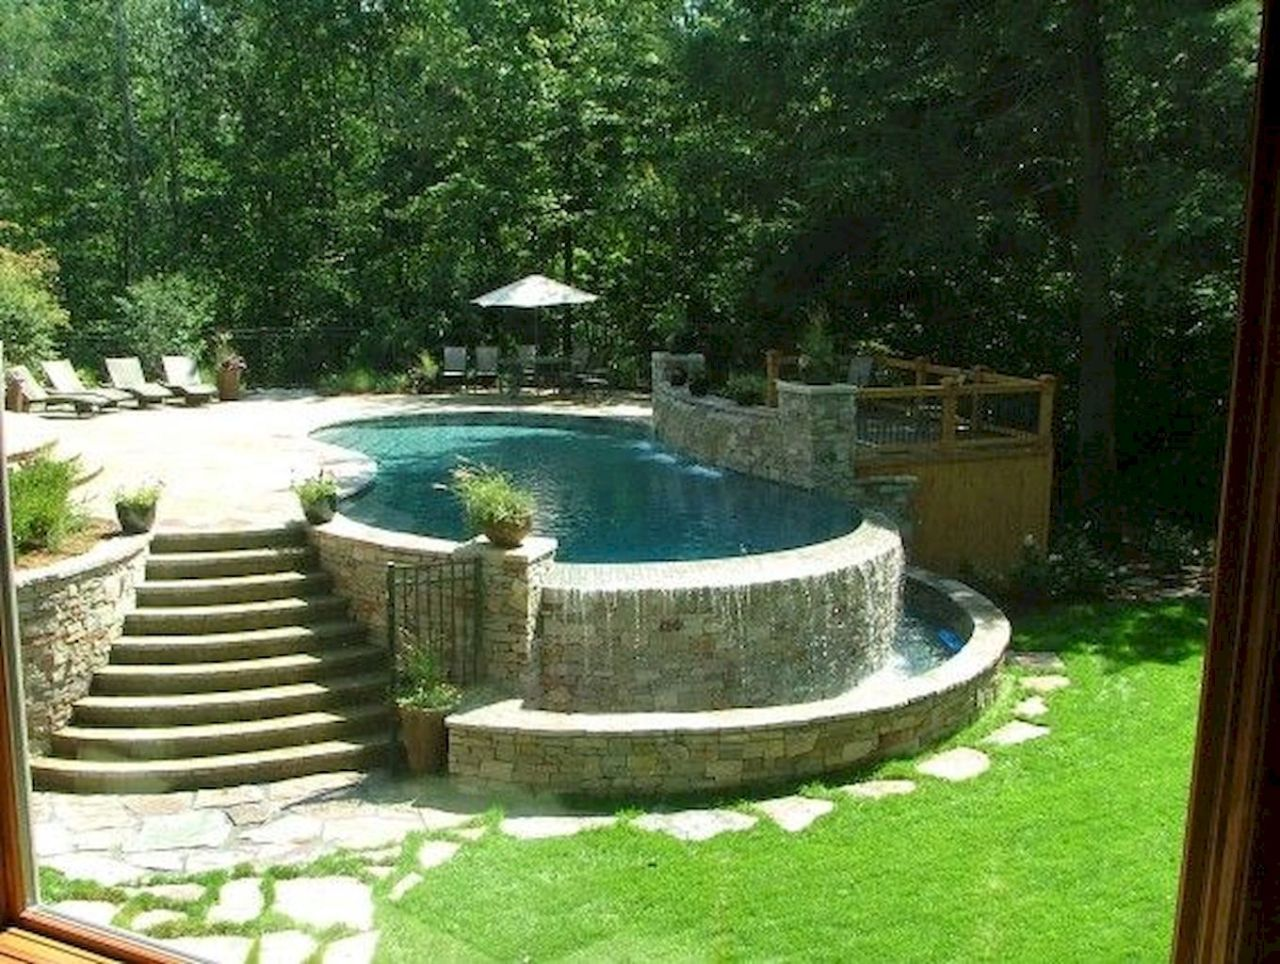 Awesome above ground pool ideas (52)   Above ground pool ...